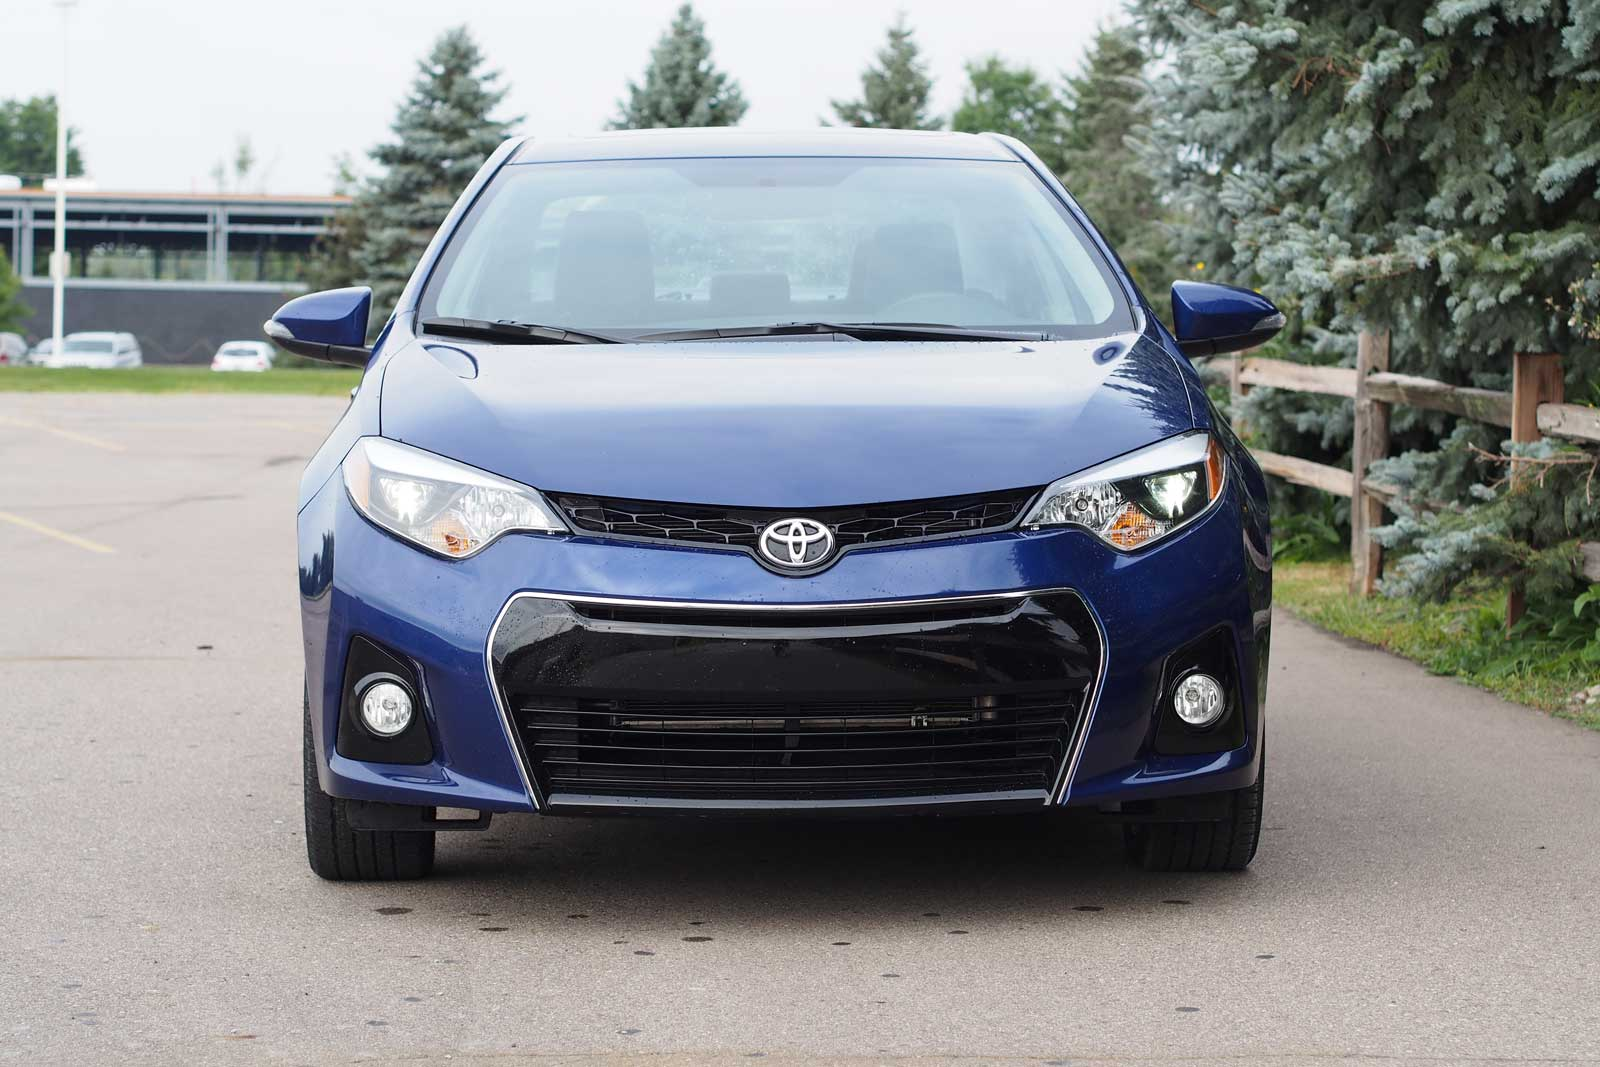 2013 toyota corolla s manual